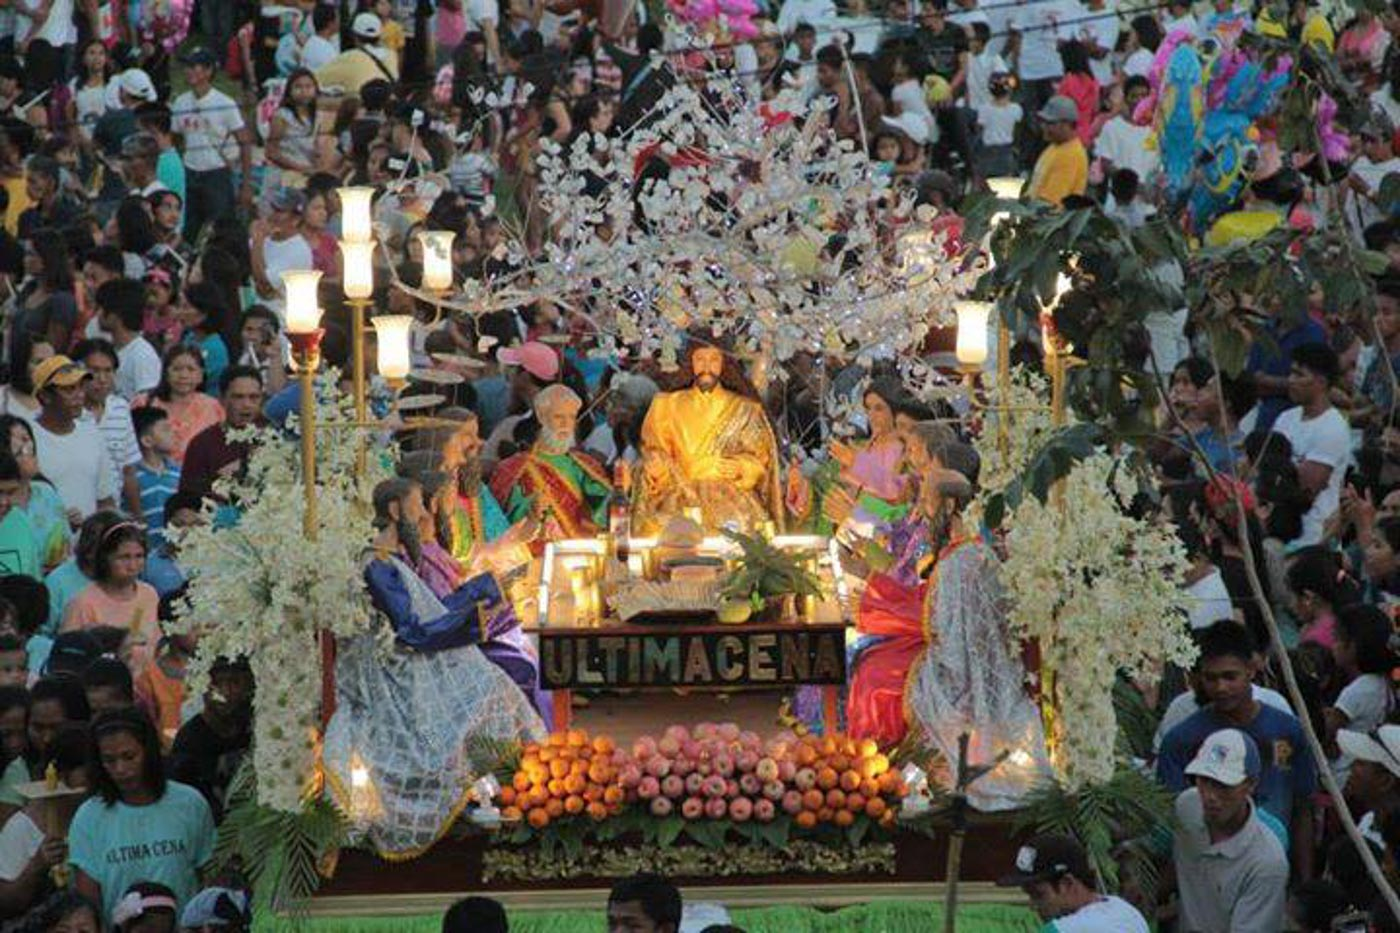 The purpose of Holy Week processions